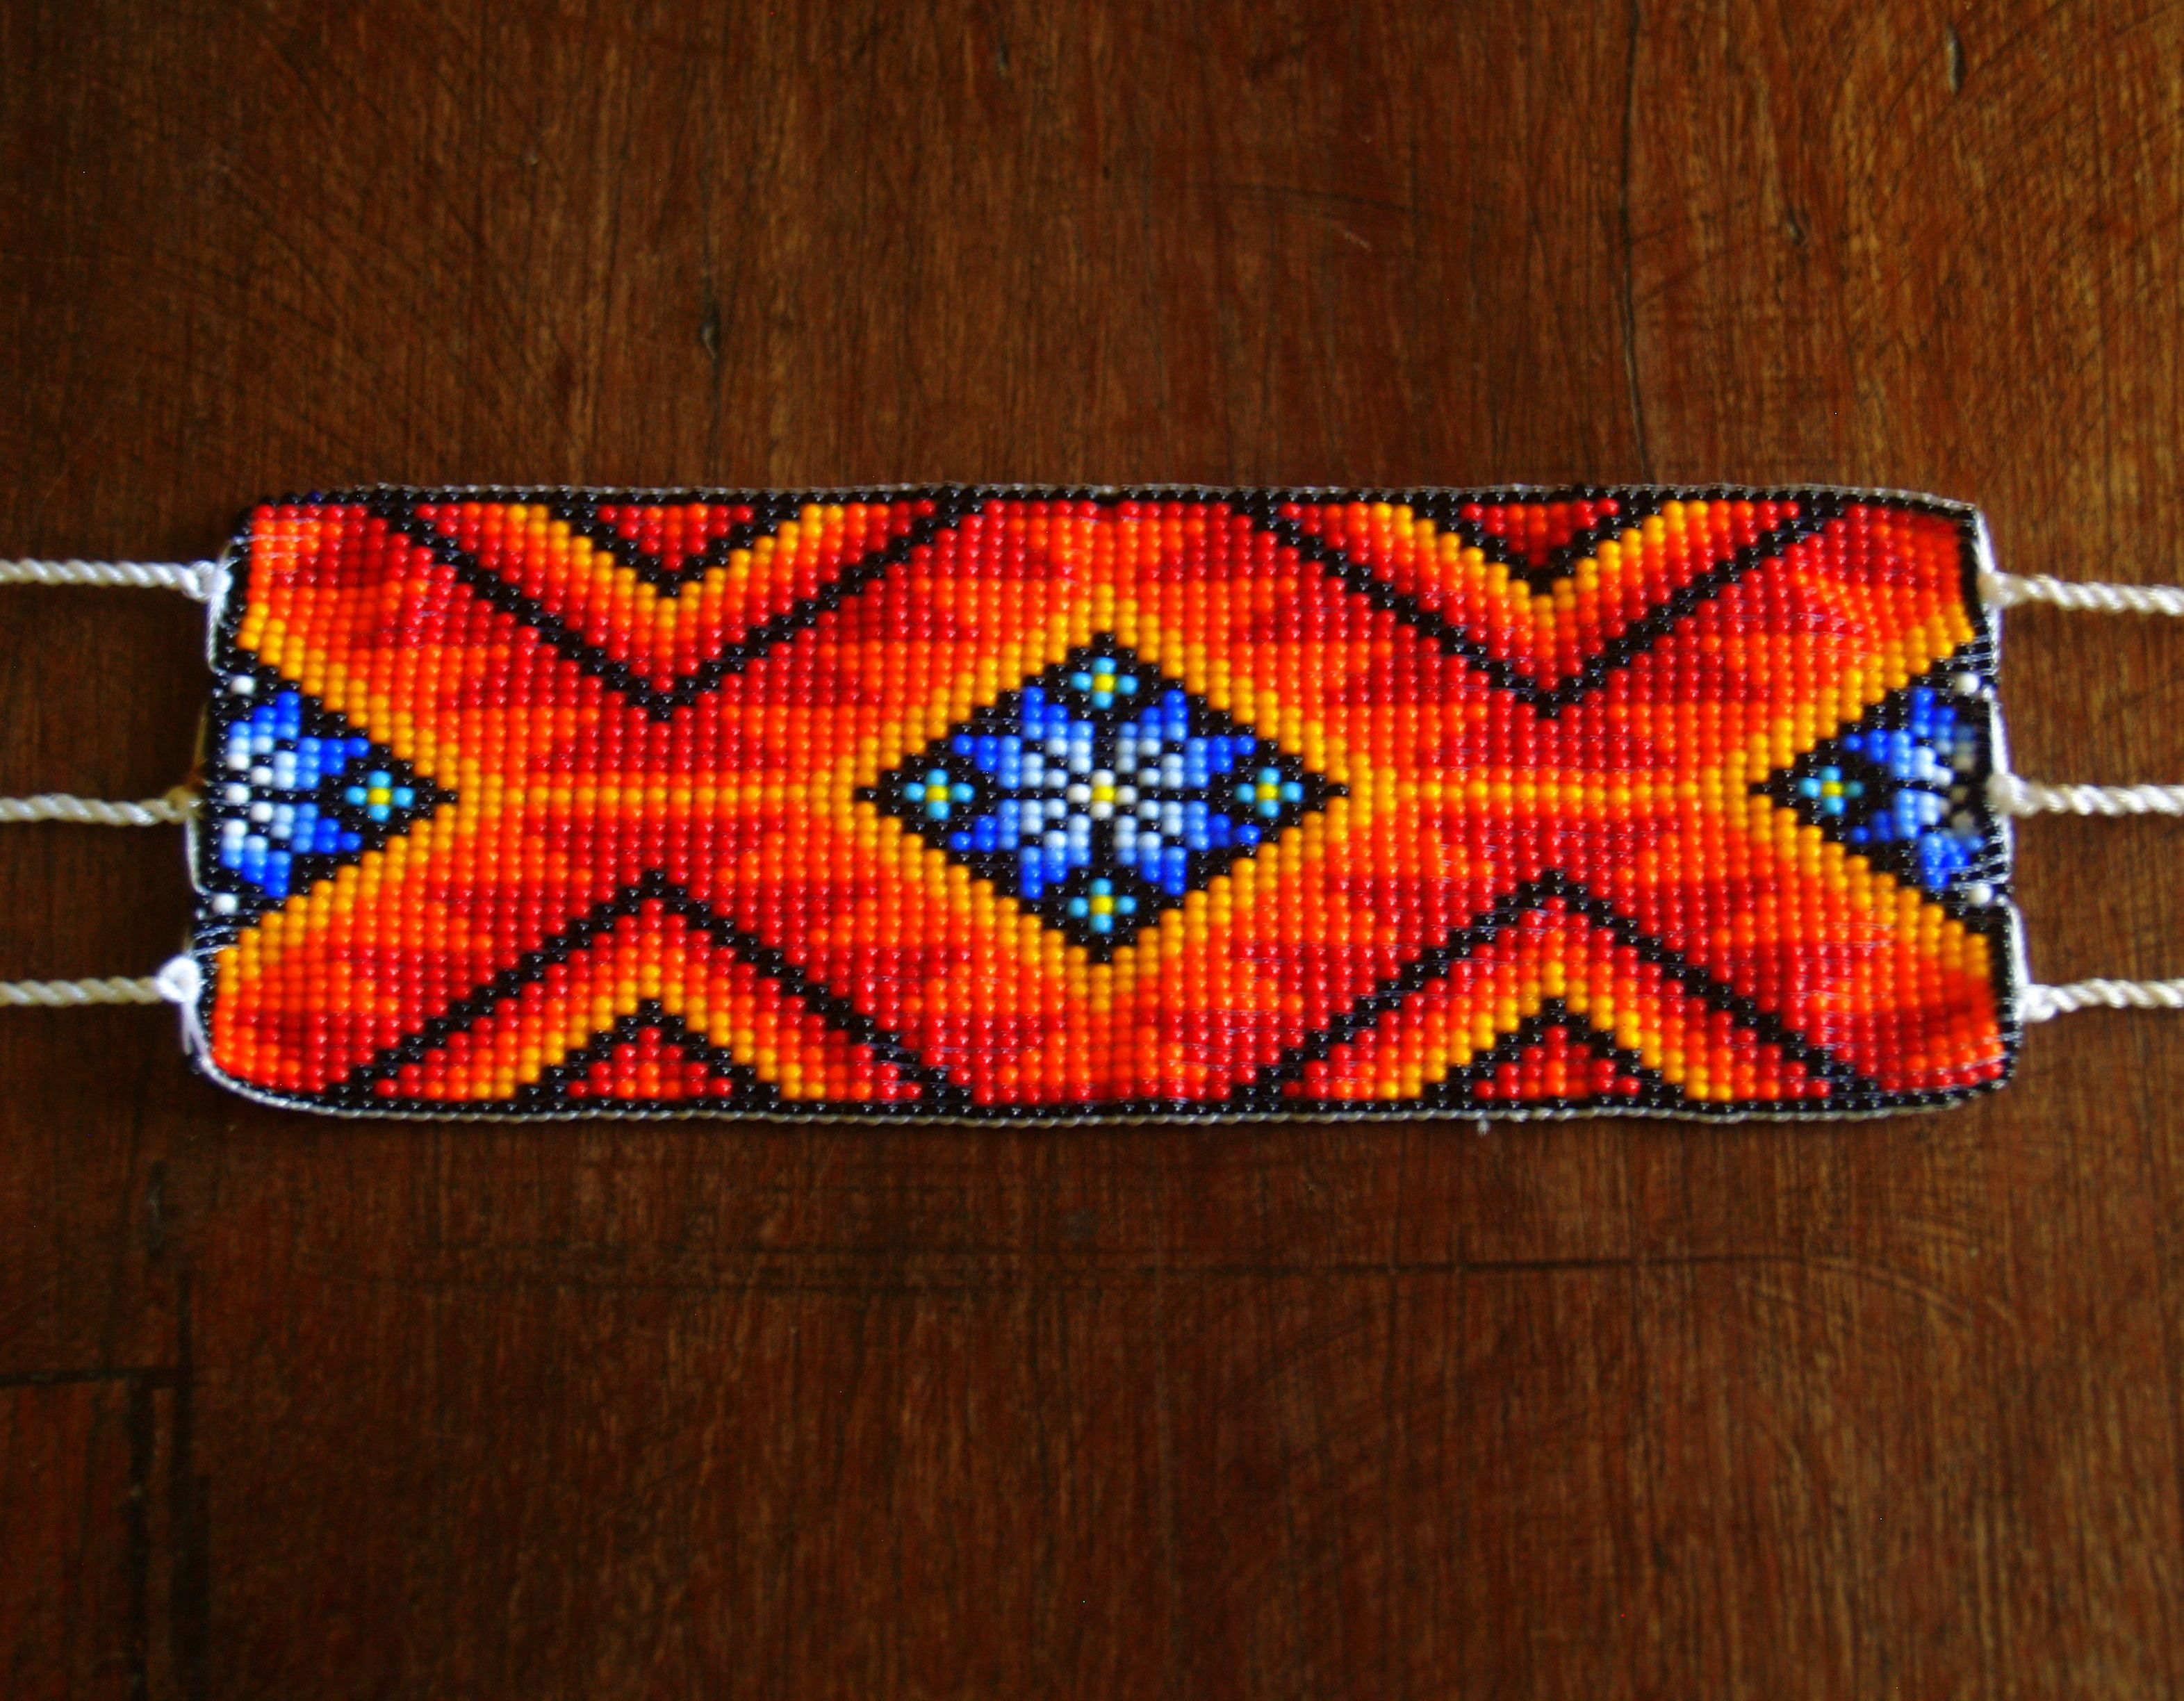 Hand Beaded Huichol Bracelet, check it out at www.facebook.com/BazaarArtisani